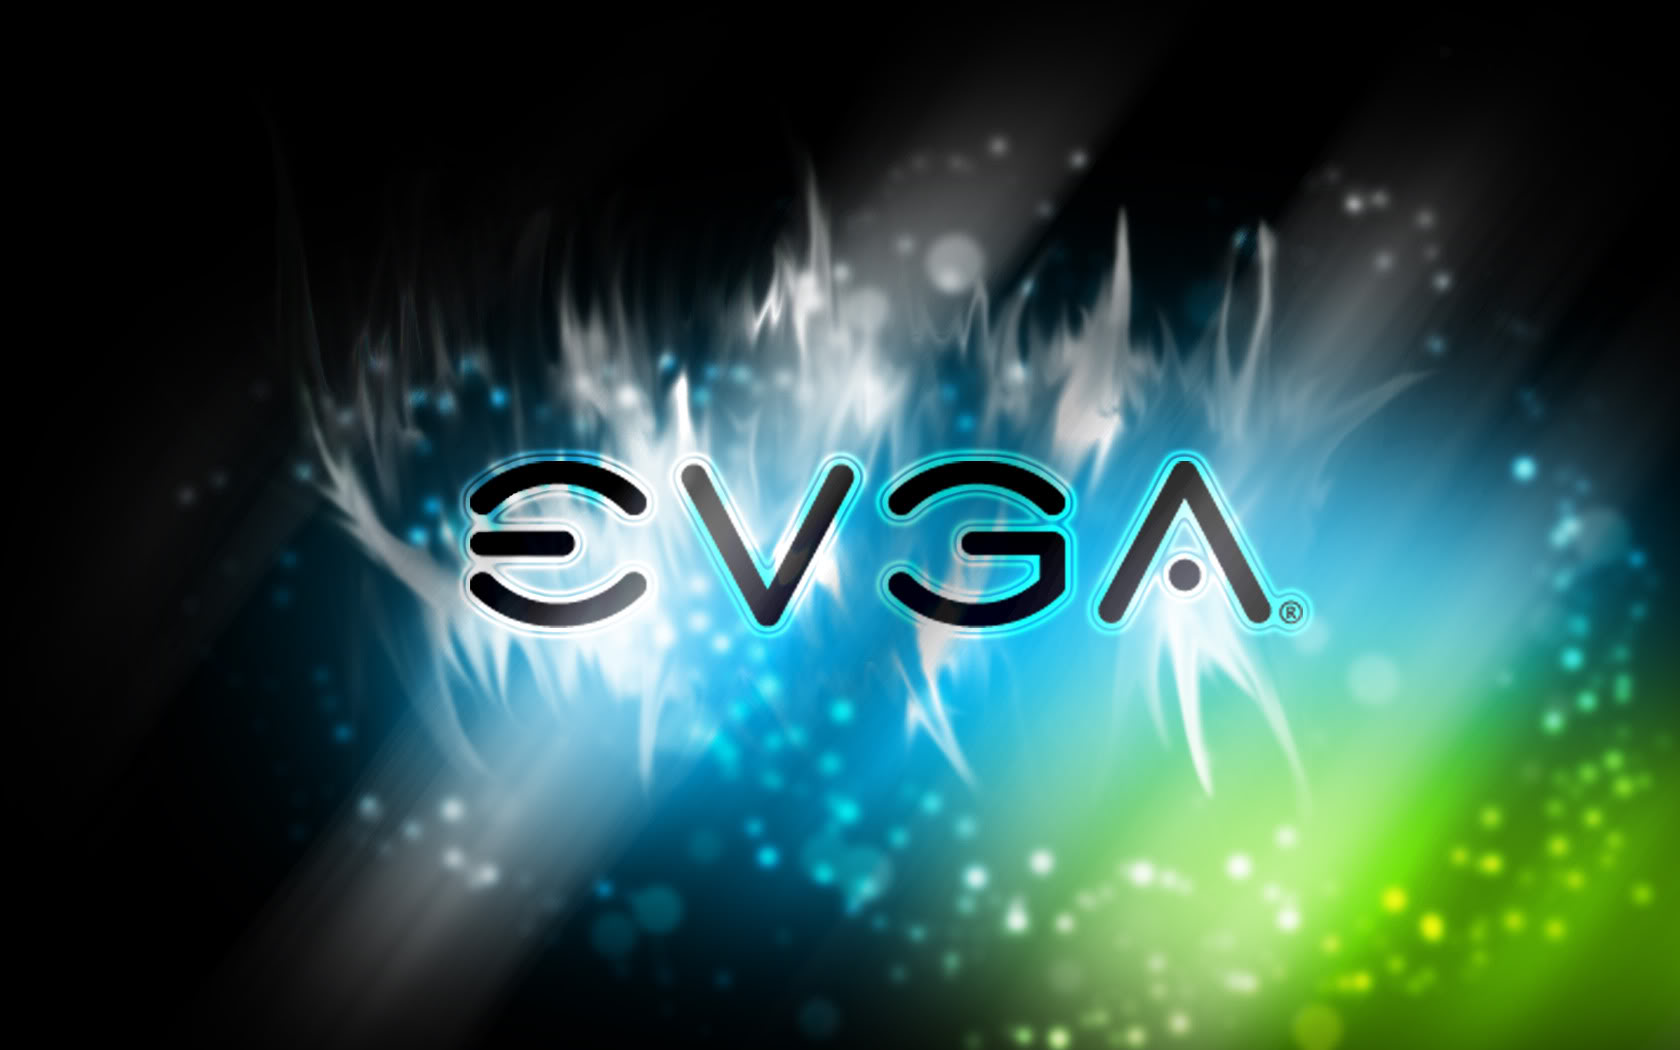 EVGA Backgrounds on Wallpapers Vista